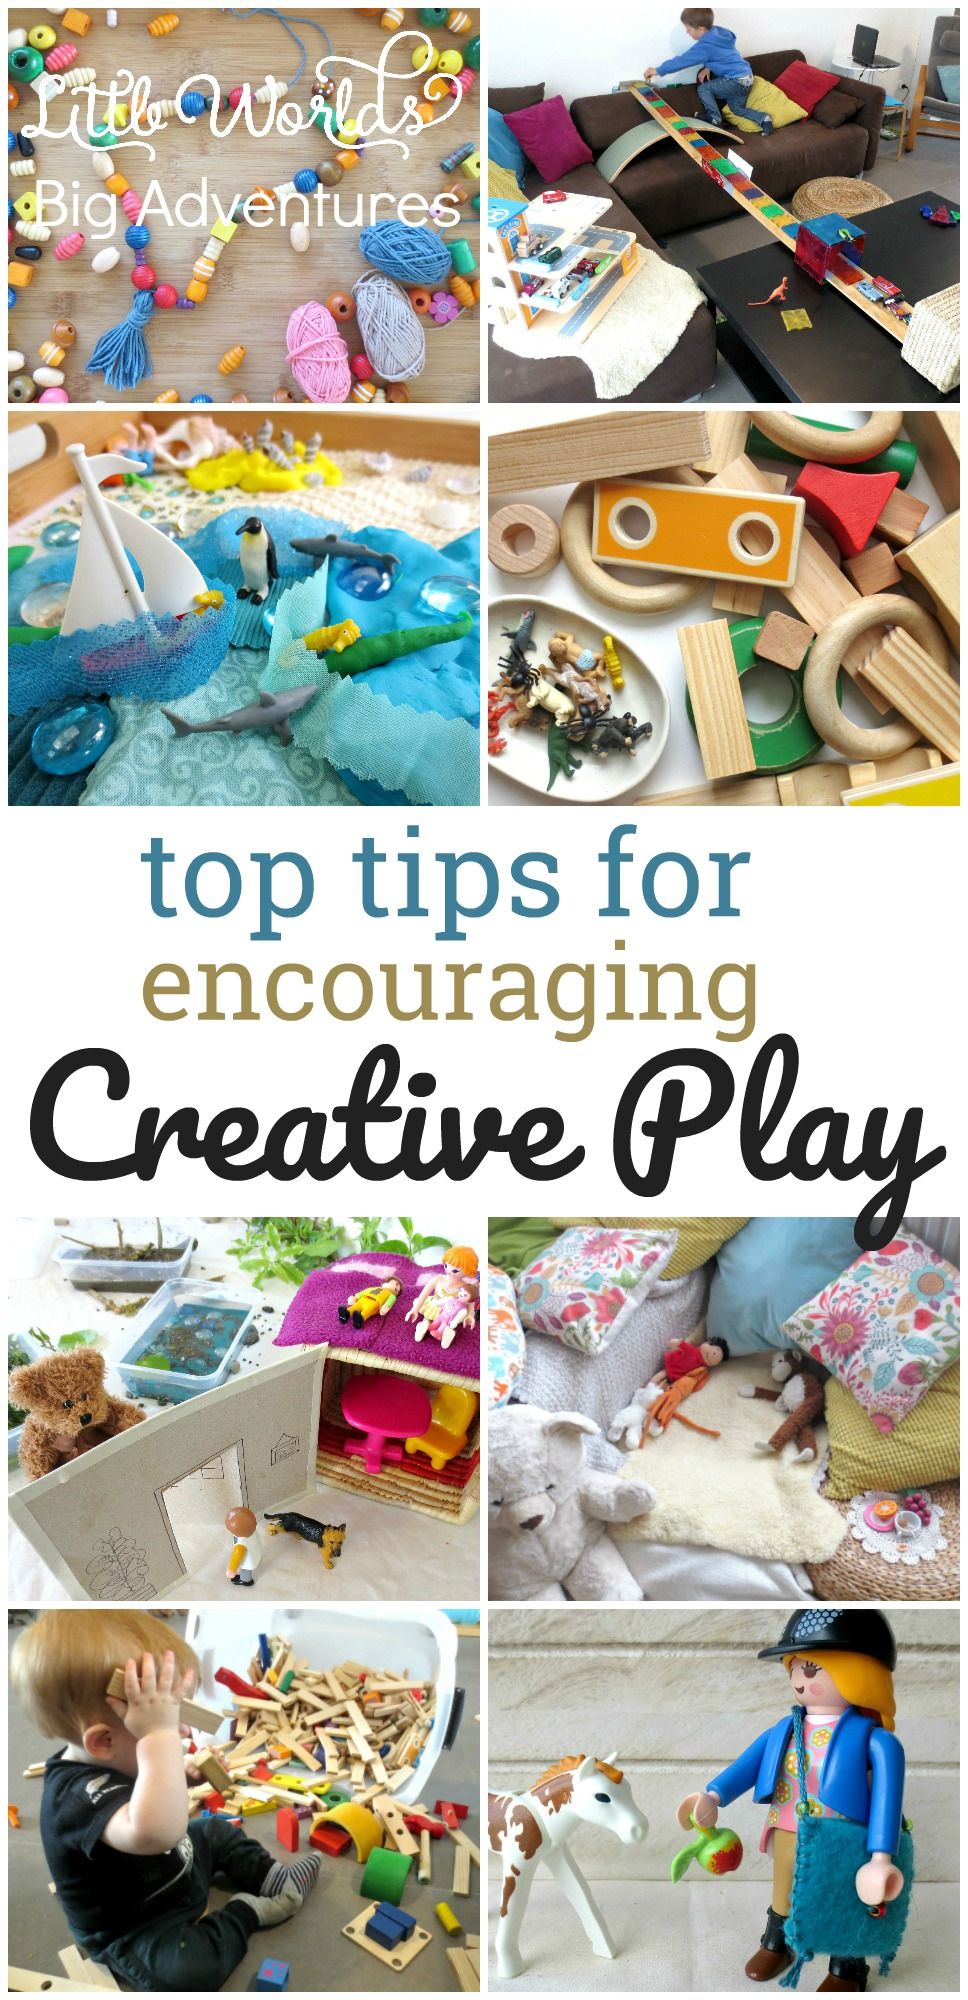 Top Tops for Encouraging Creative Play in Young Children | Little Worlds Big Adventures